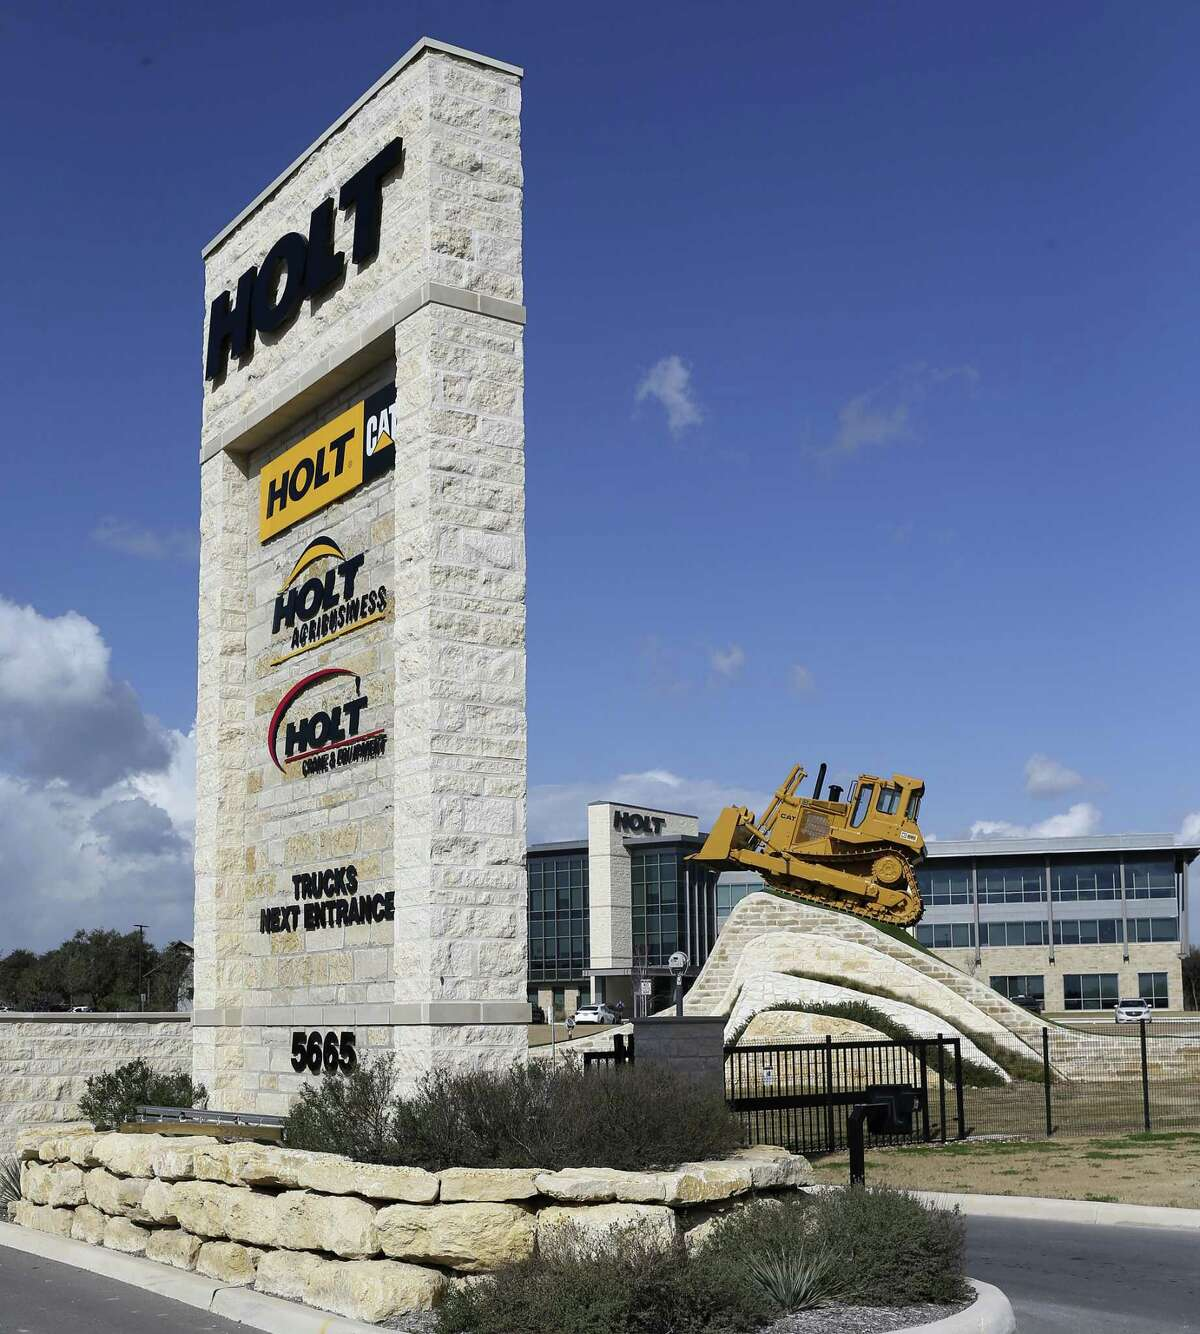 Holt Cat's San Antonio headquarters. The company has the largest Caterpillar dealership group in the U.S. and saw business start to pick up in the second half of 2017.